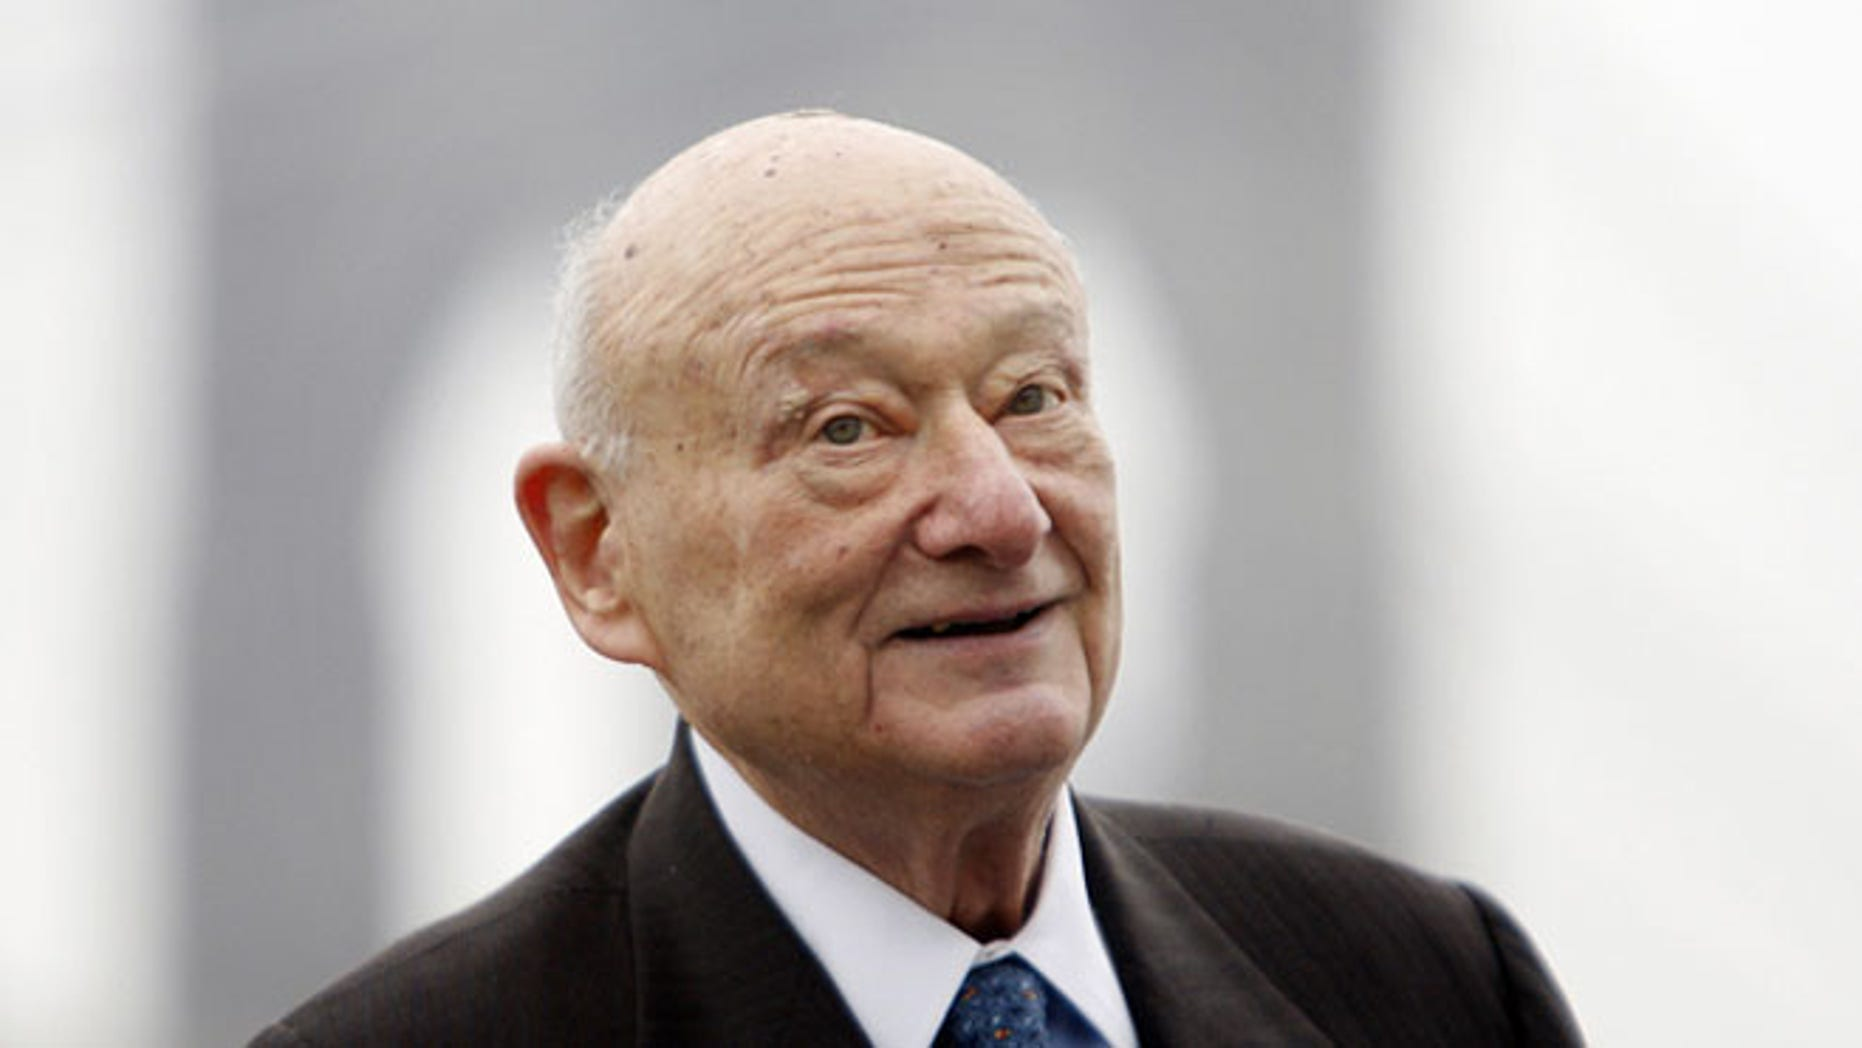 In this March 23, 2010 file photo, former New York Mayor Ed Koch speaks during a publicity event in New York. The FBI has for the first time released materials from its files on the former New York Mayor, who died earlier this year at age 88.